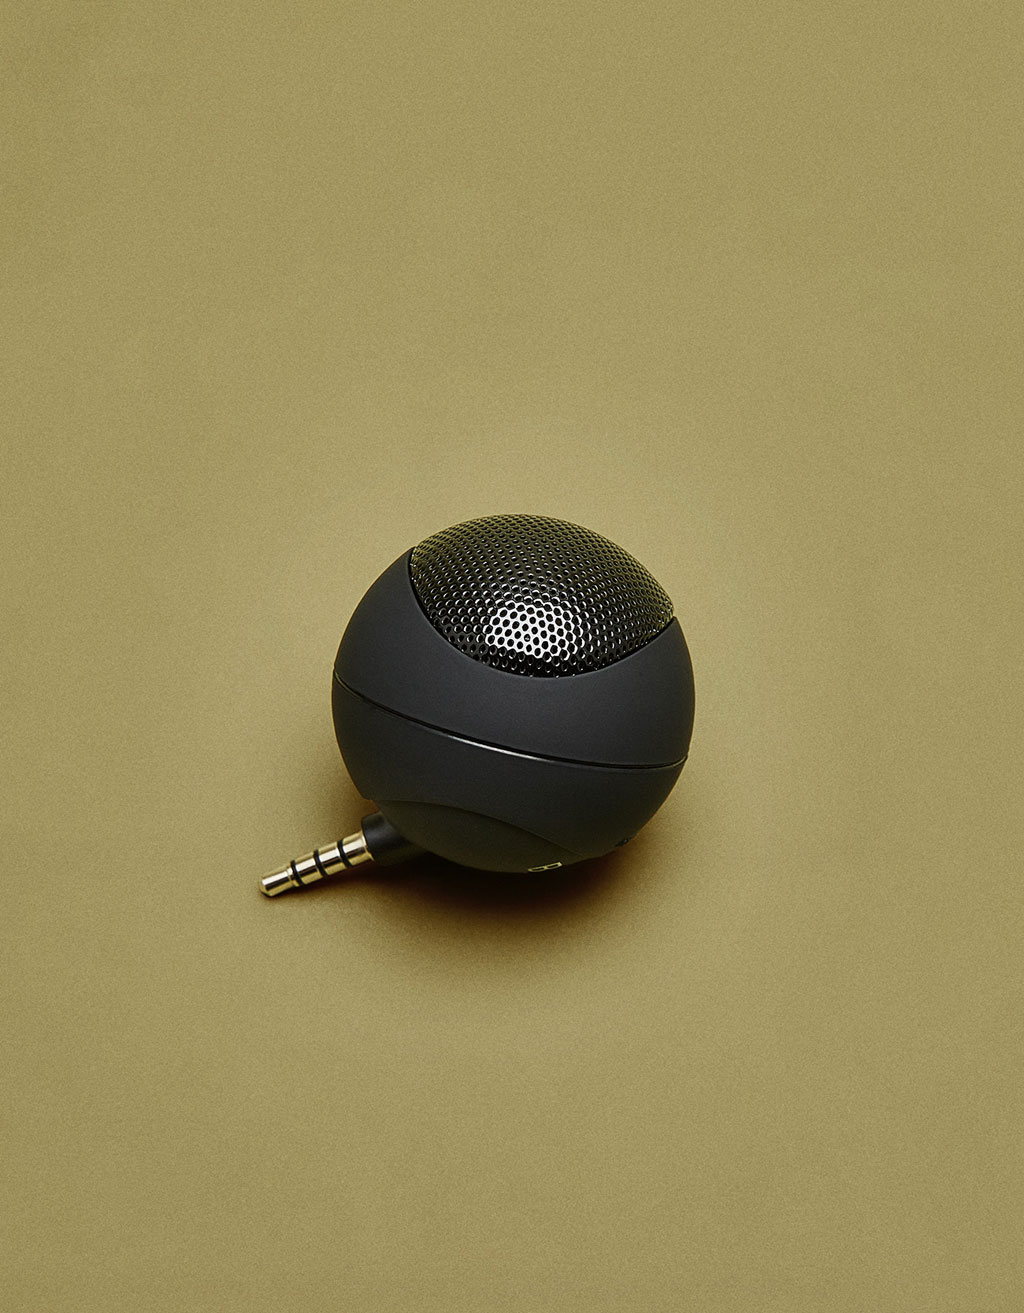 Rubberised effect speaker